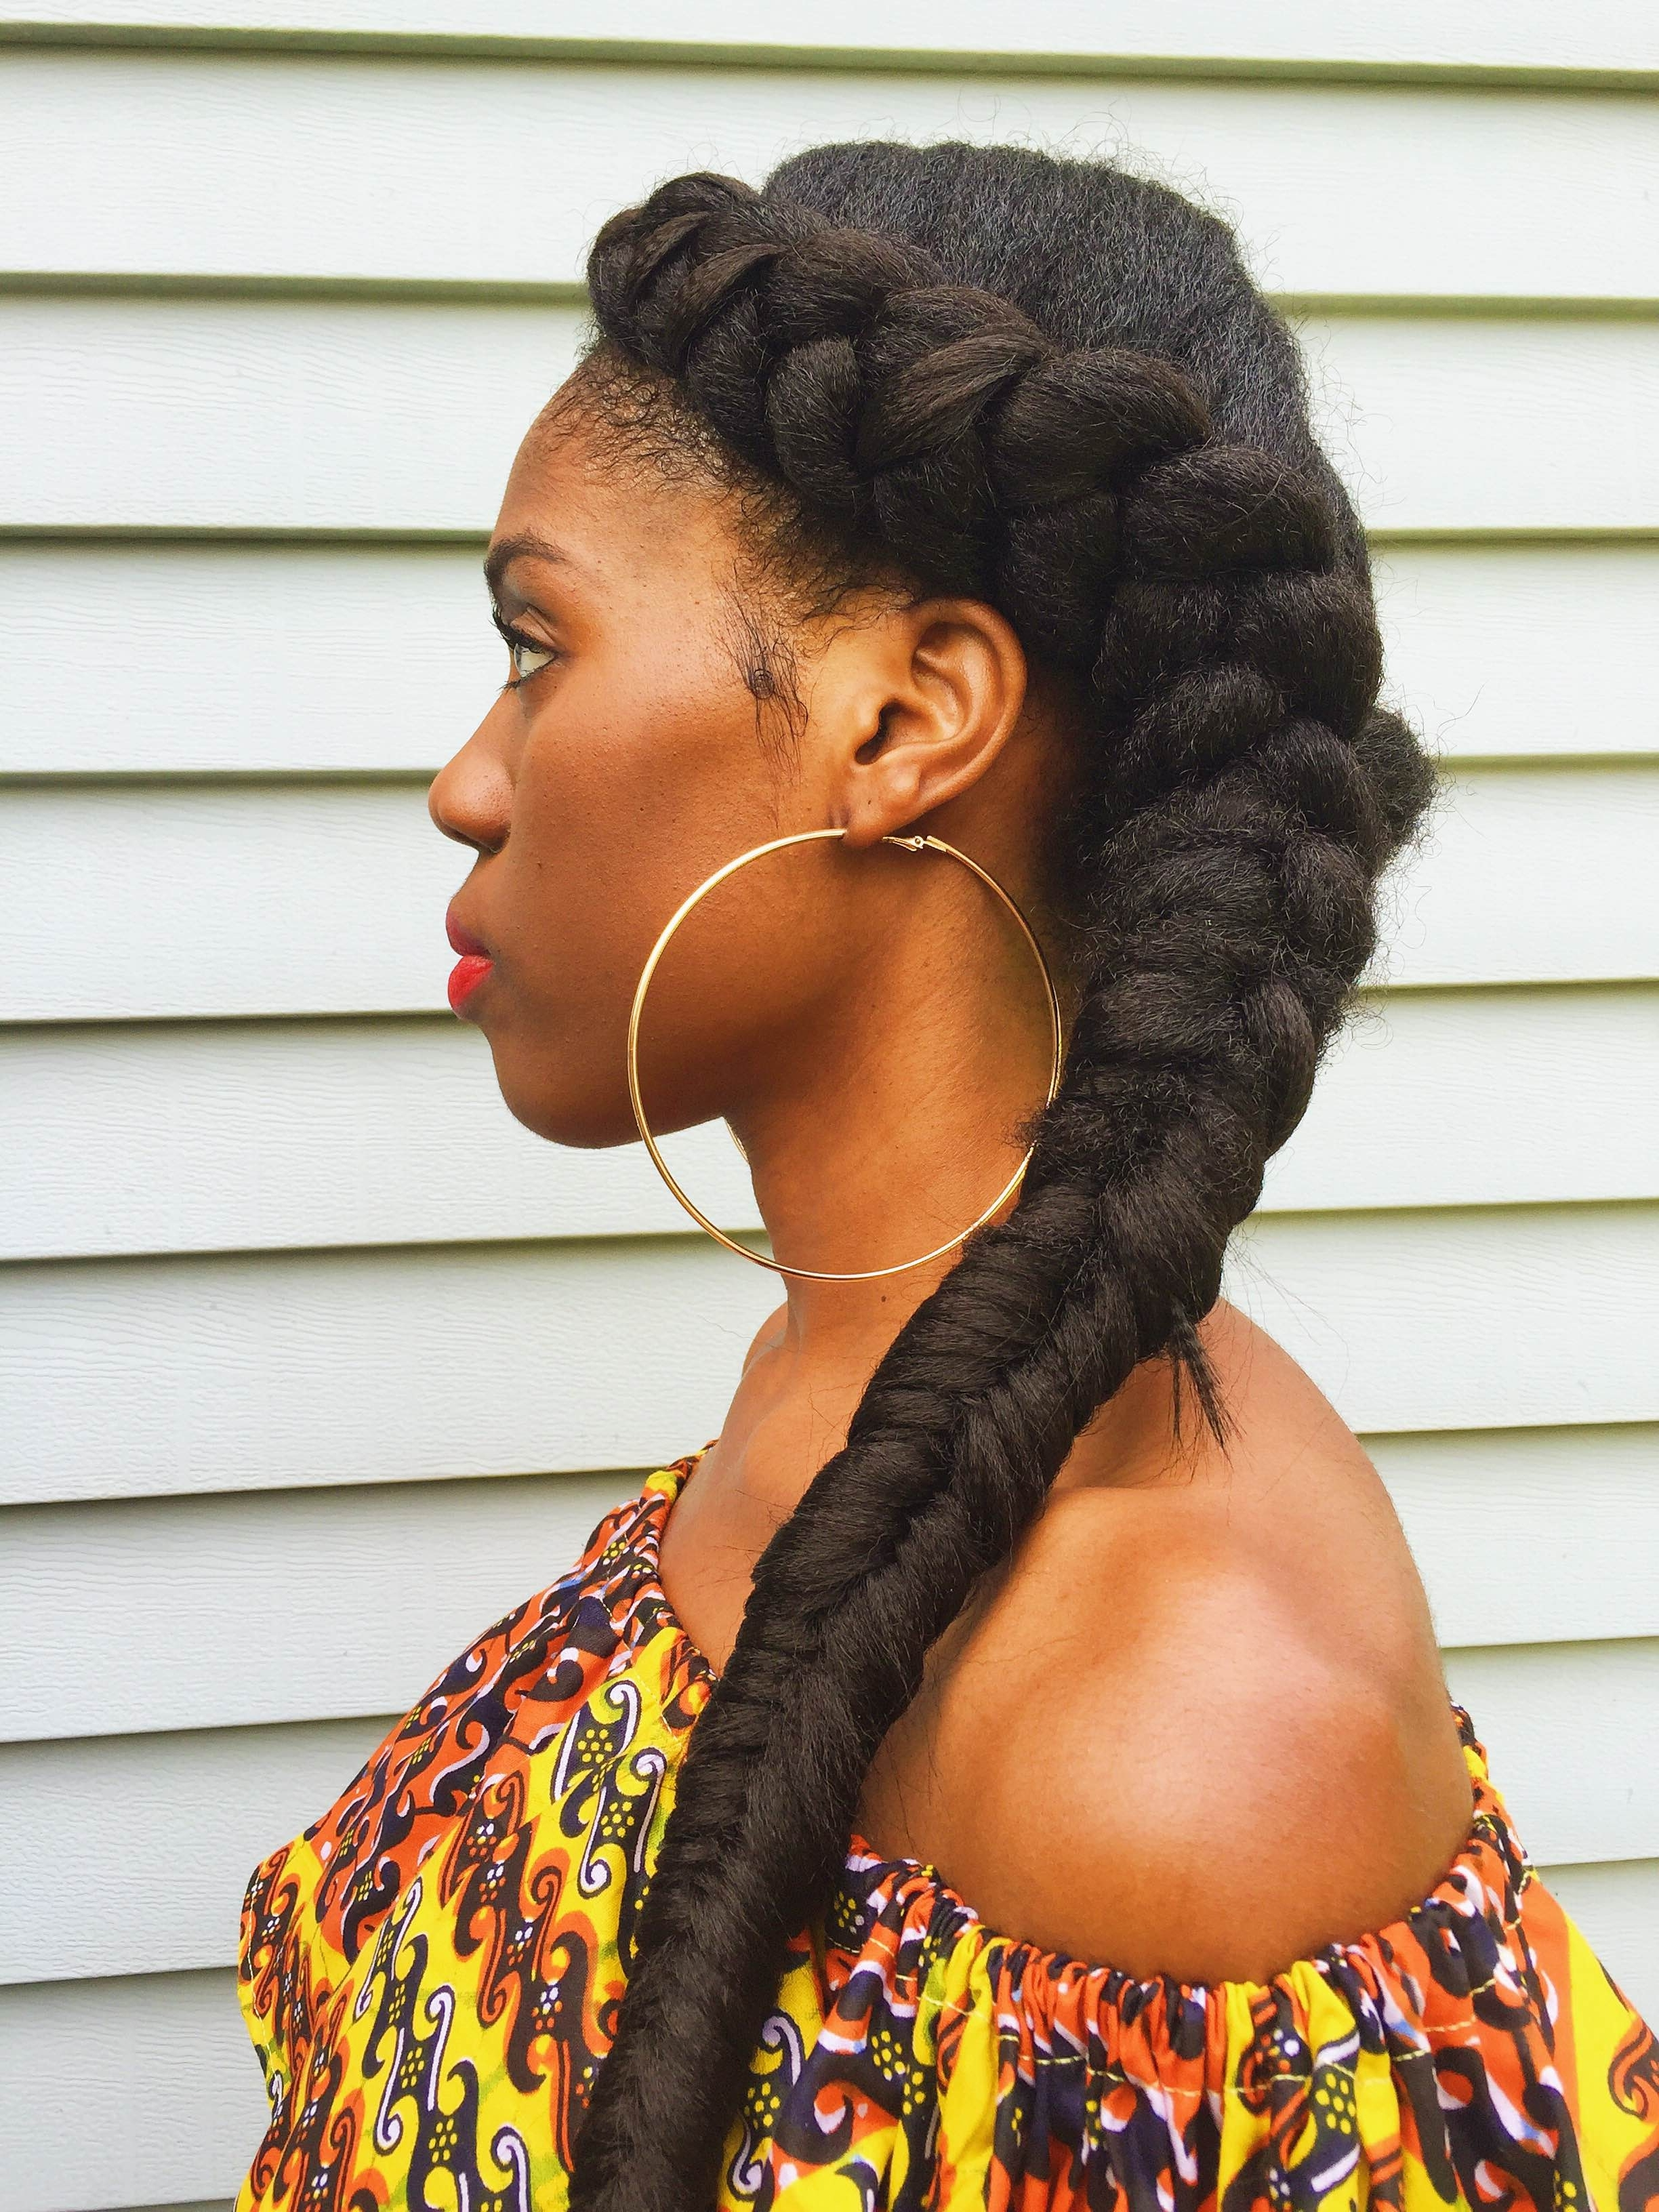 African Braids: 15 Stunning African Hair Braiding Styles And Pictures Throughout Most Popular Braided Hairstyles For Afro Hair (View 13 of 15)